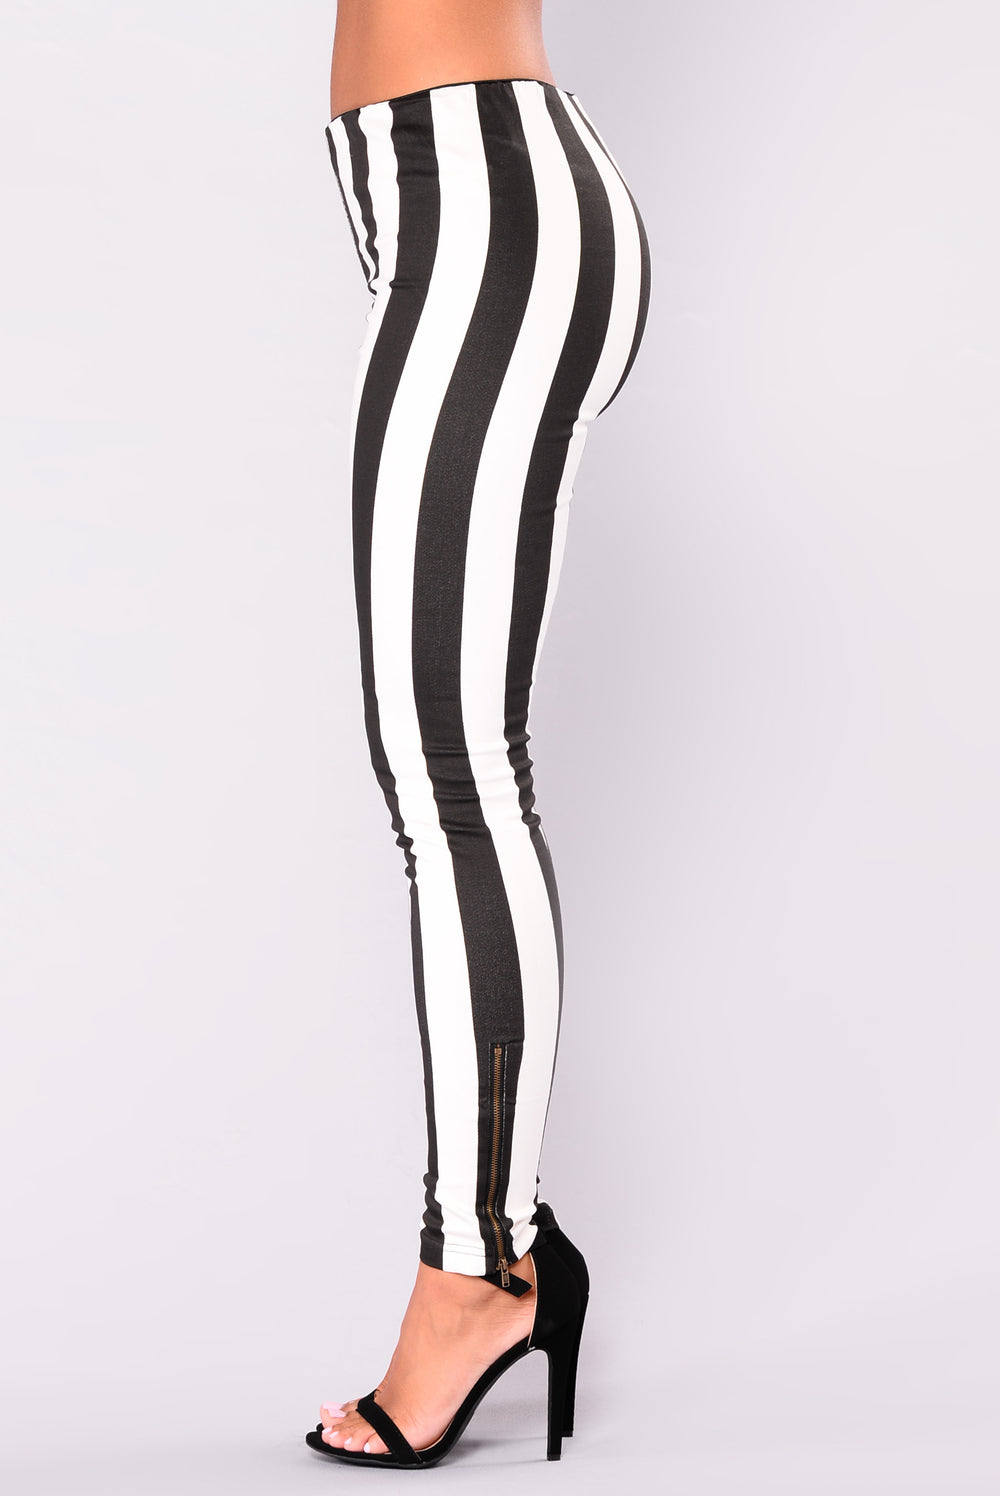 Avery Avenue Striped Pants - Black